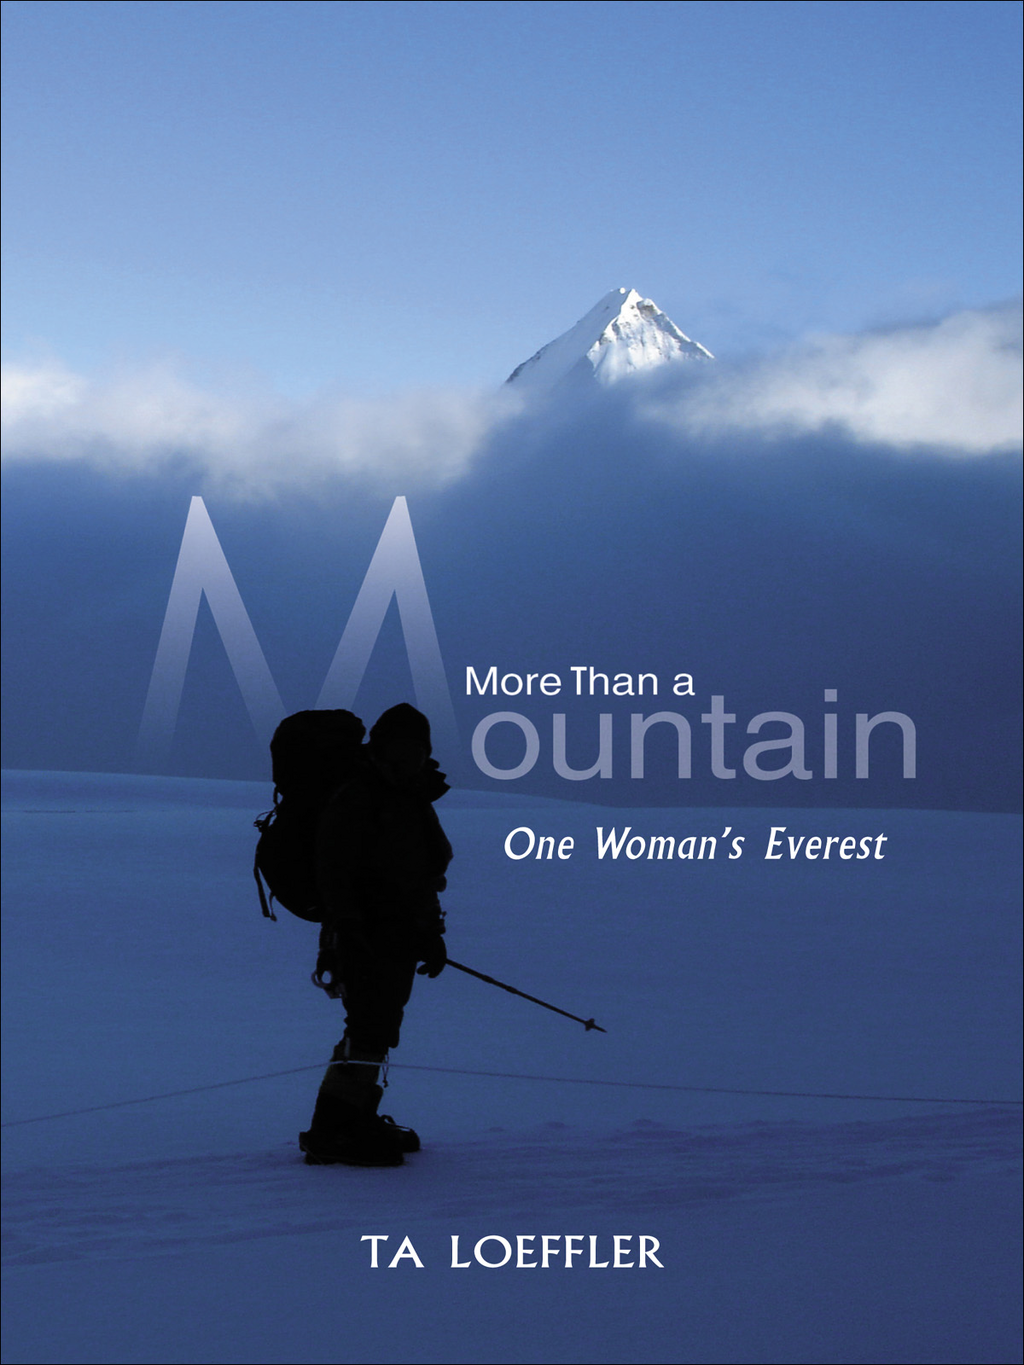 More Than a Mountain By: TA Loeffler, PhD